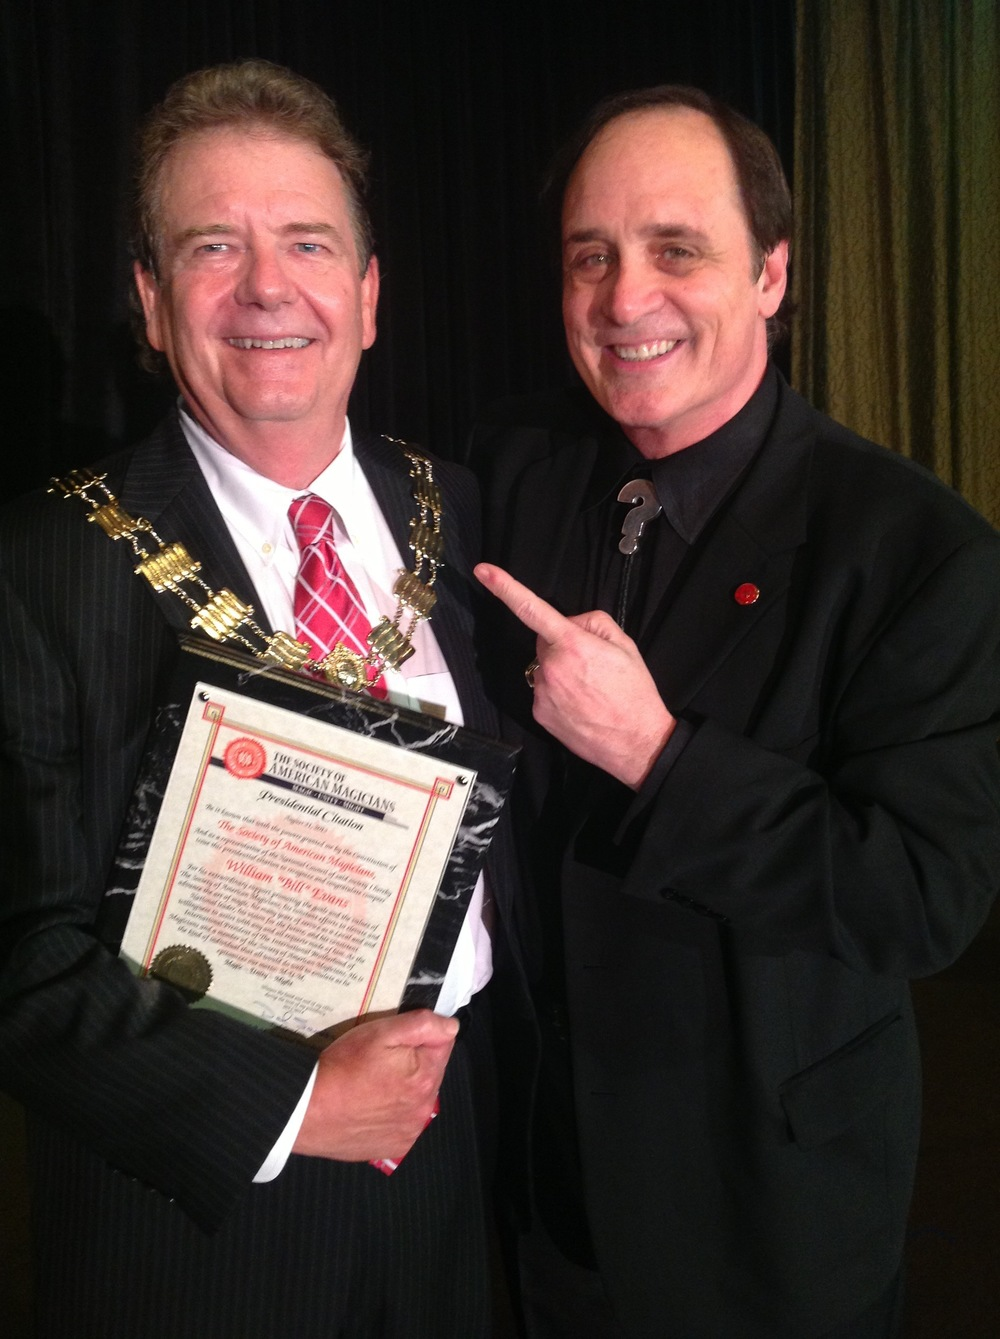 I.B.M. International President Bill Evans receiving certificate from S.A.M. International President Dal Sanders